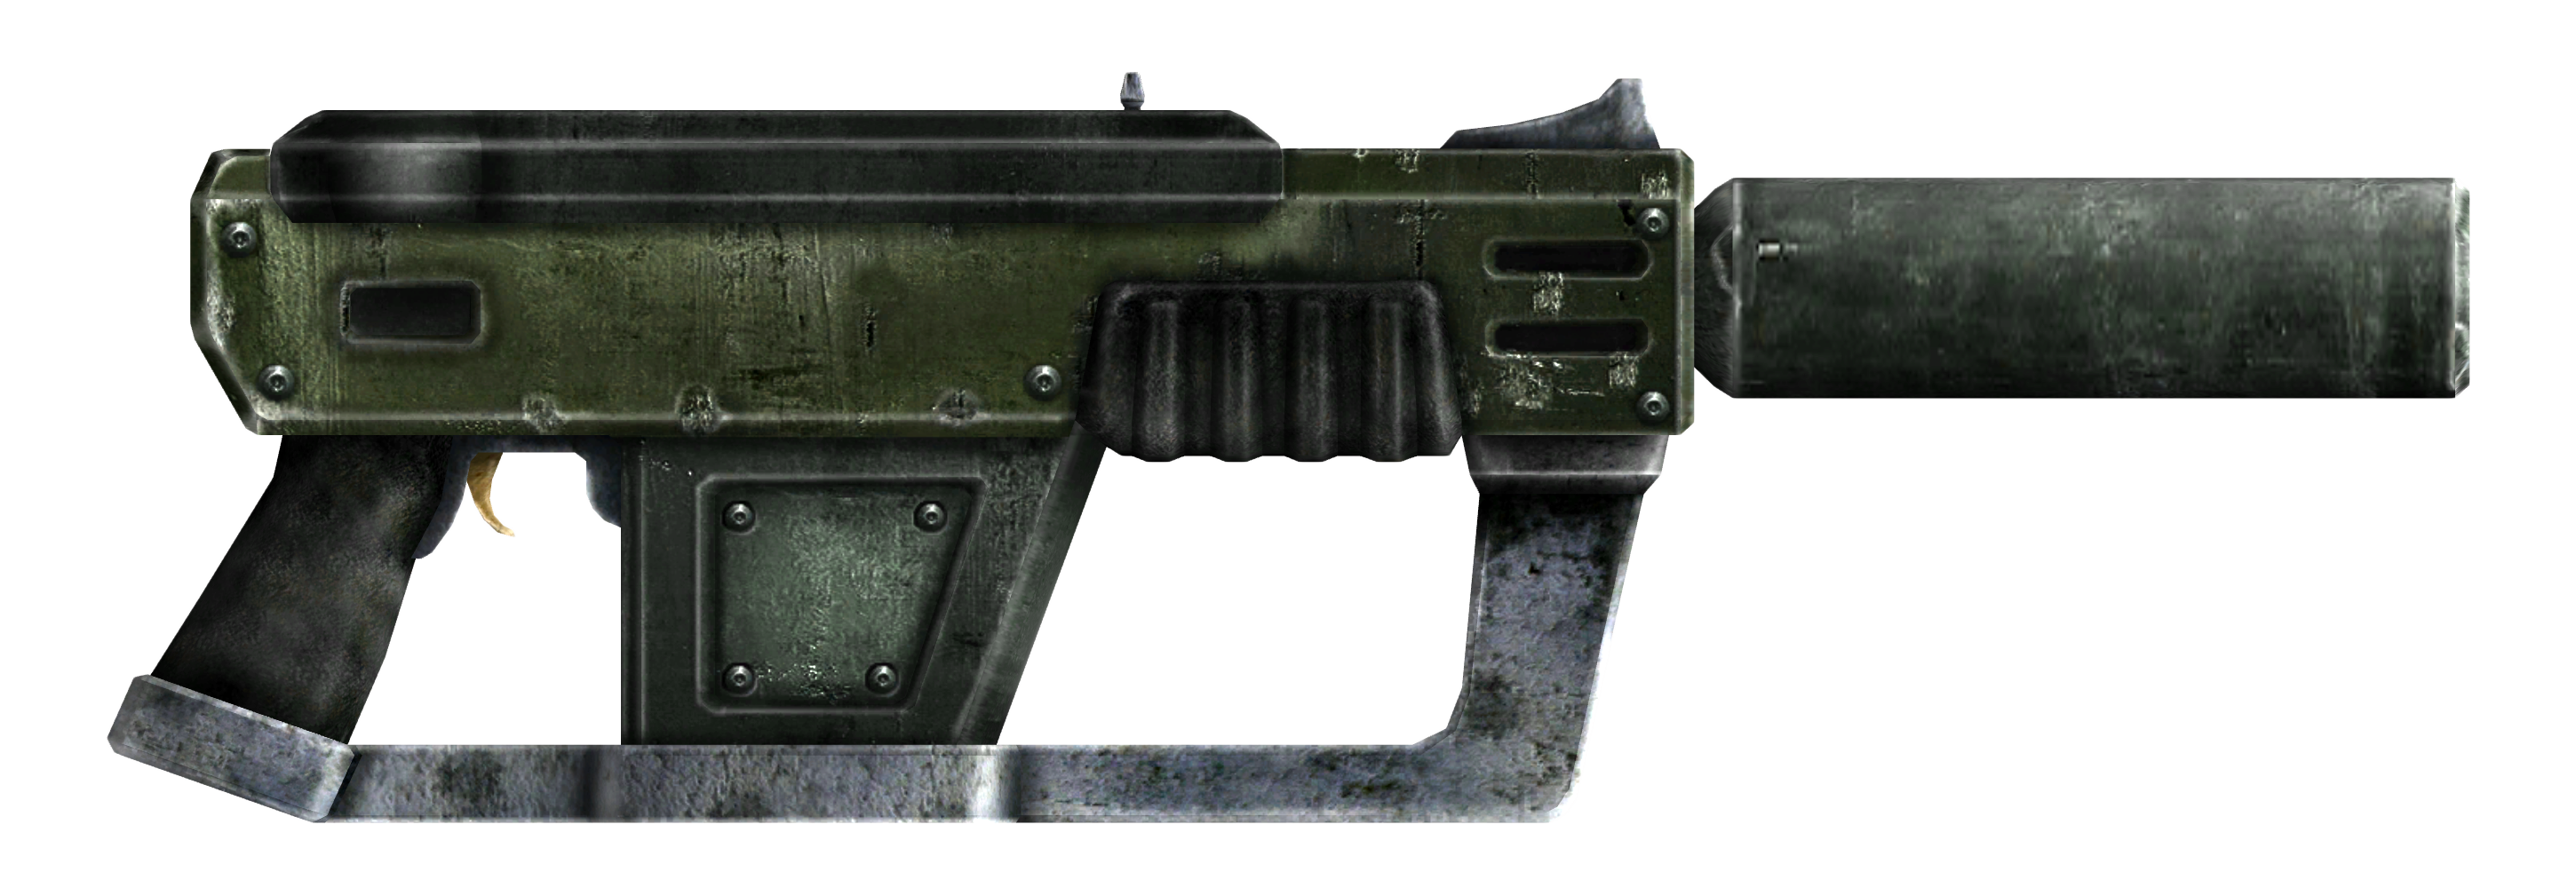 12.7mm SMG with silencer